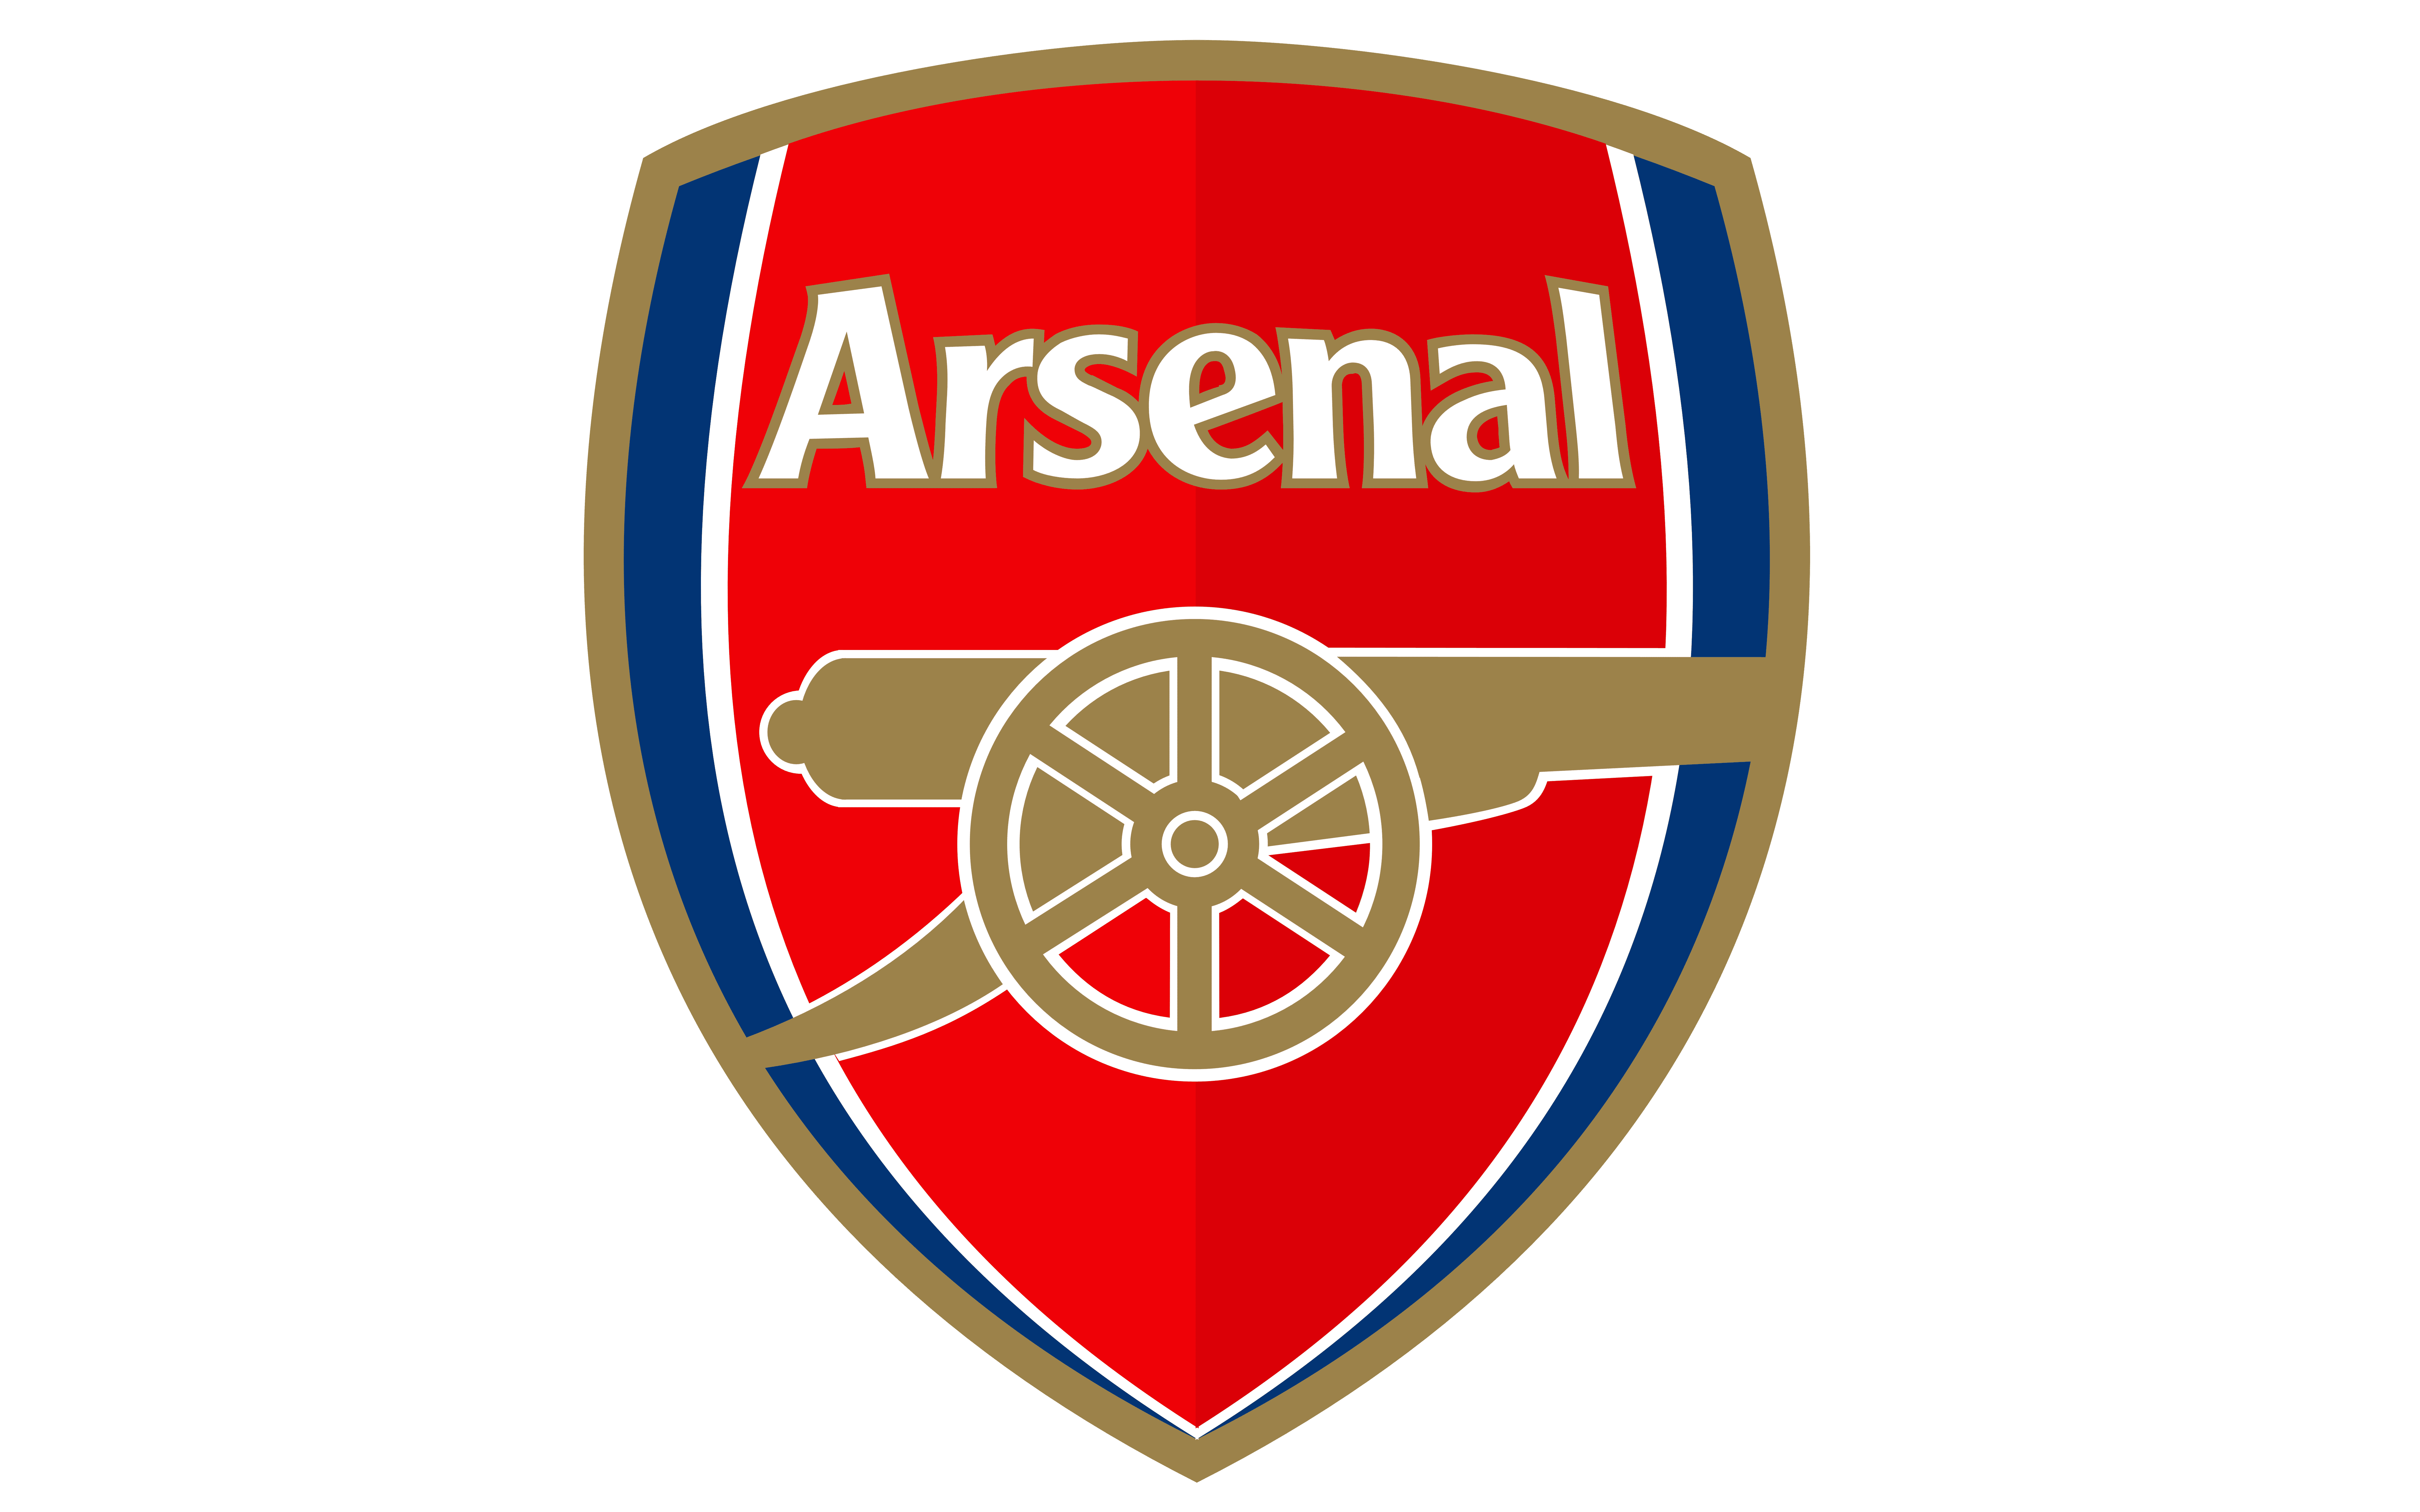 Arsenal Logo, Arsenal Symbol Meaning, History and Evolution